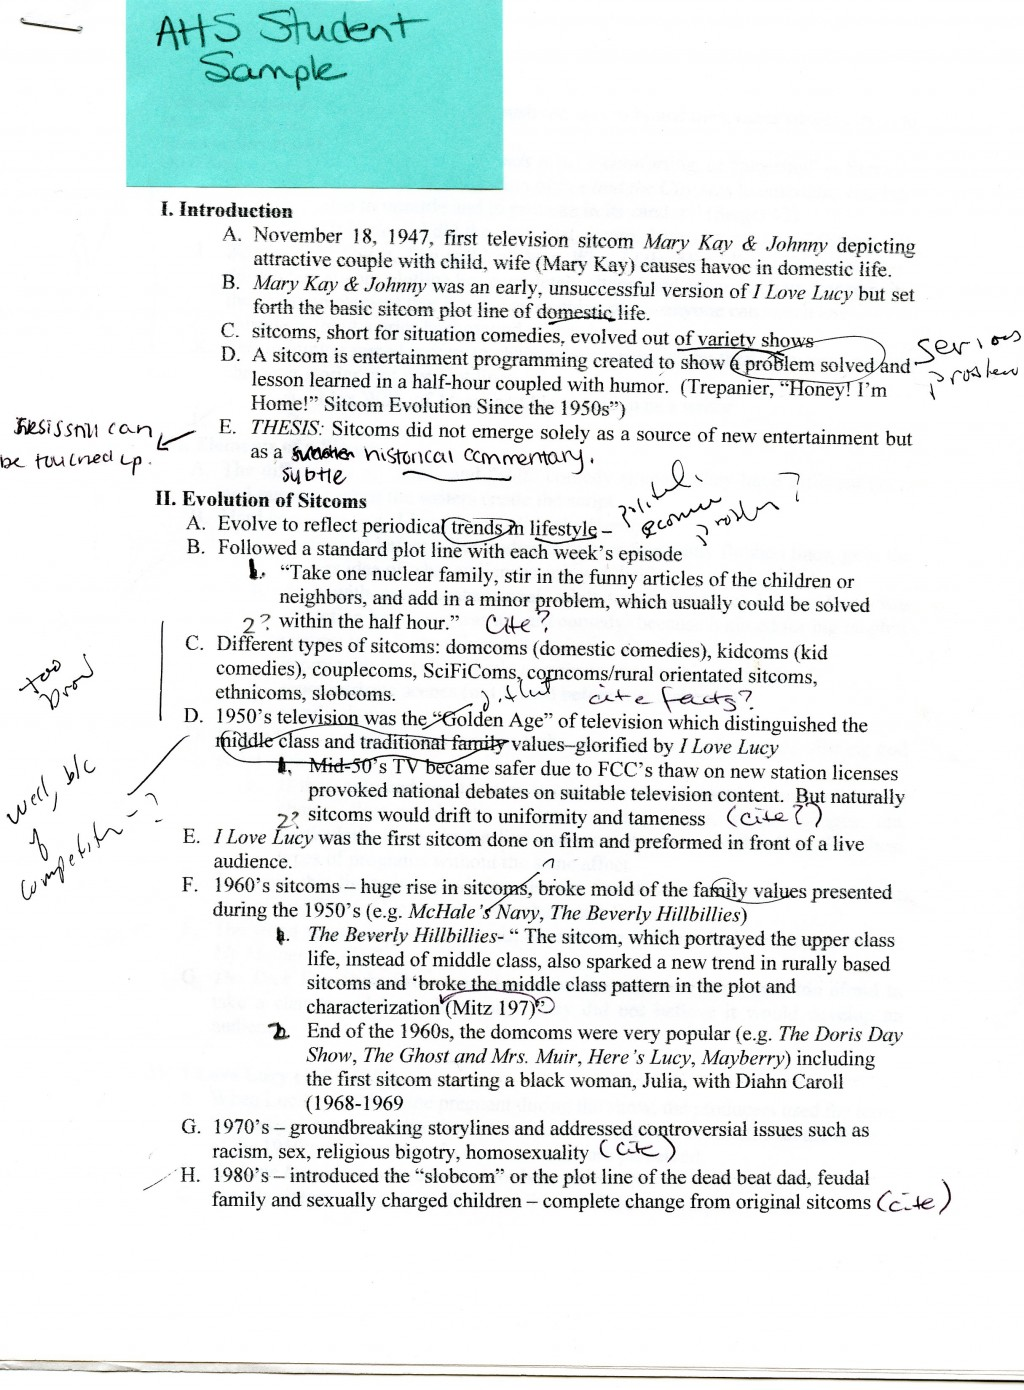 007 Smp Sample Outline 1 Thematic Essay Top Topics For Us History Regents Global Large